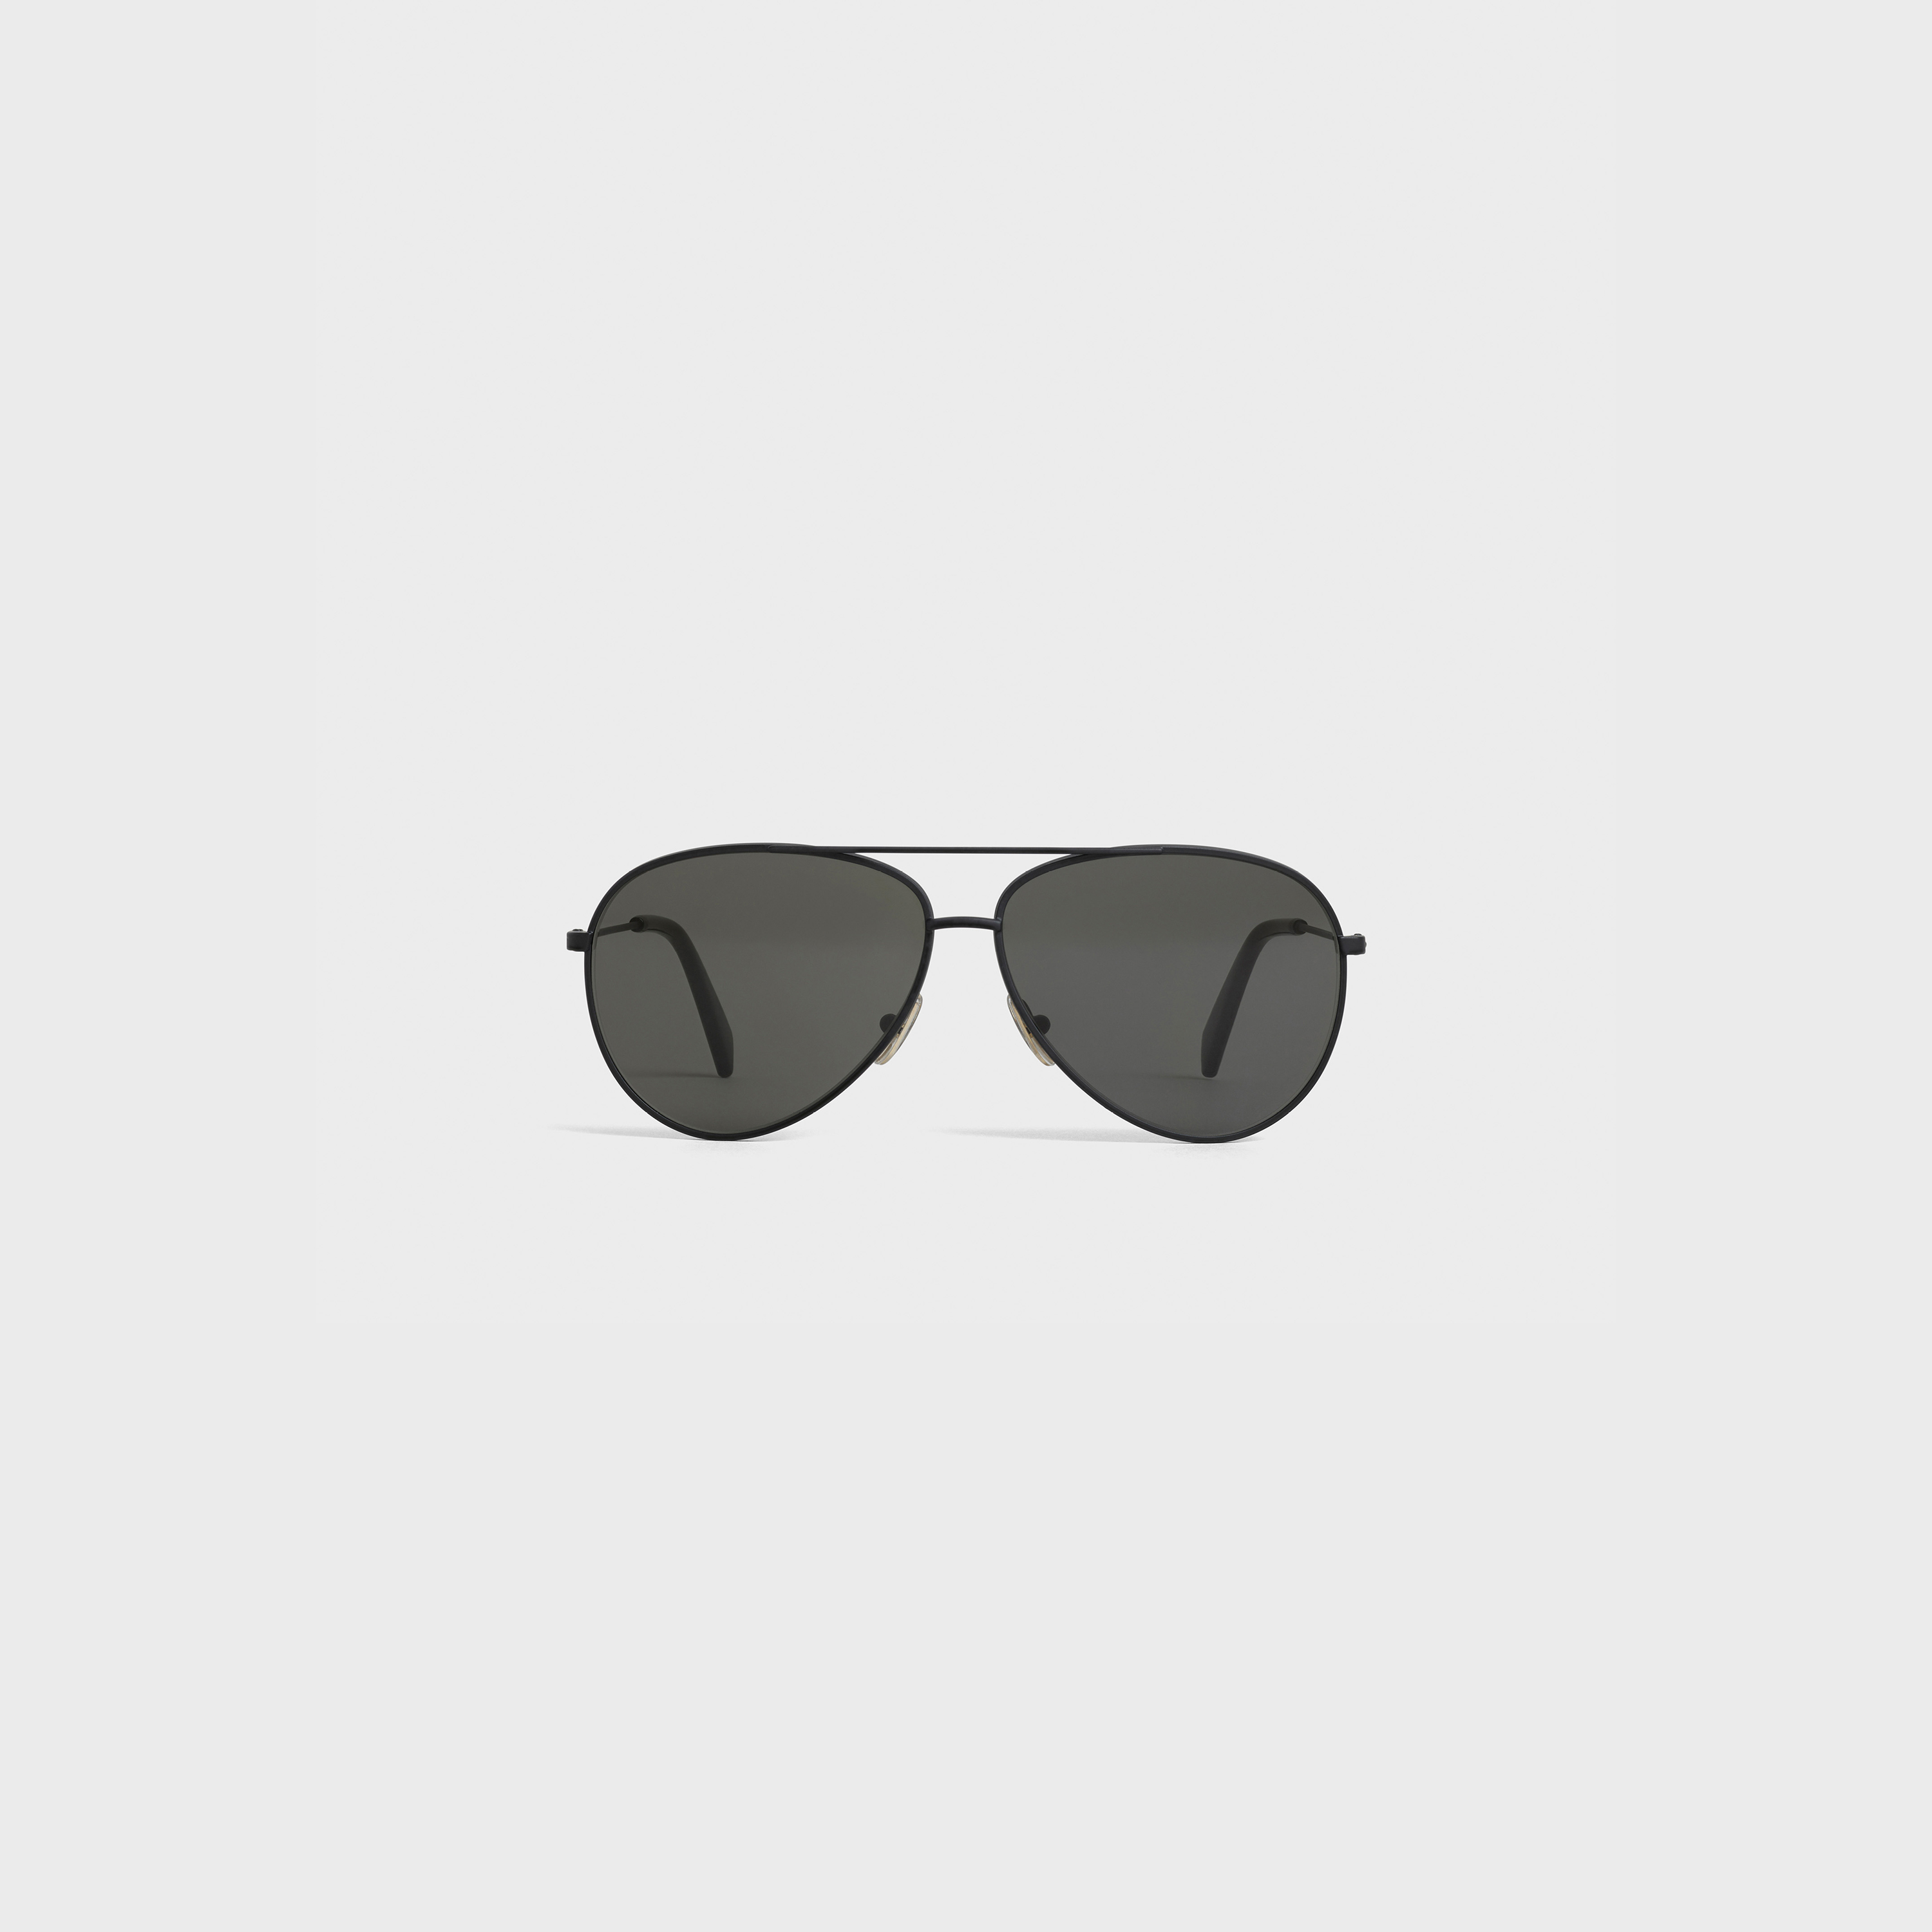 Metal Frame 01 sunglasses in Metal with Polarized Lenses | CELINE